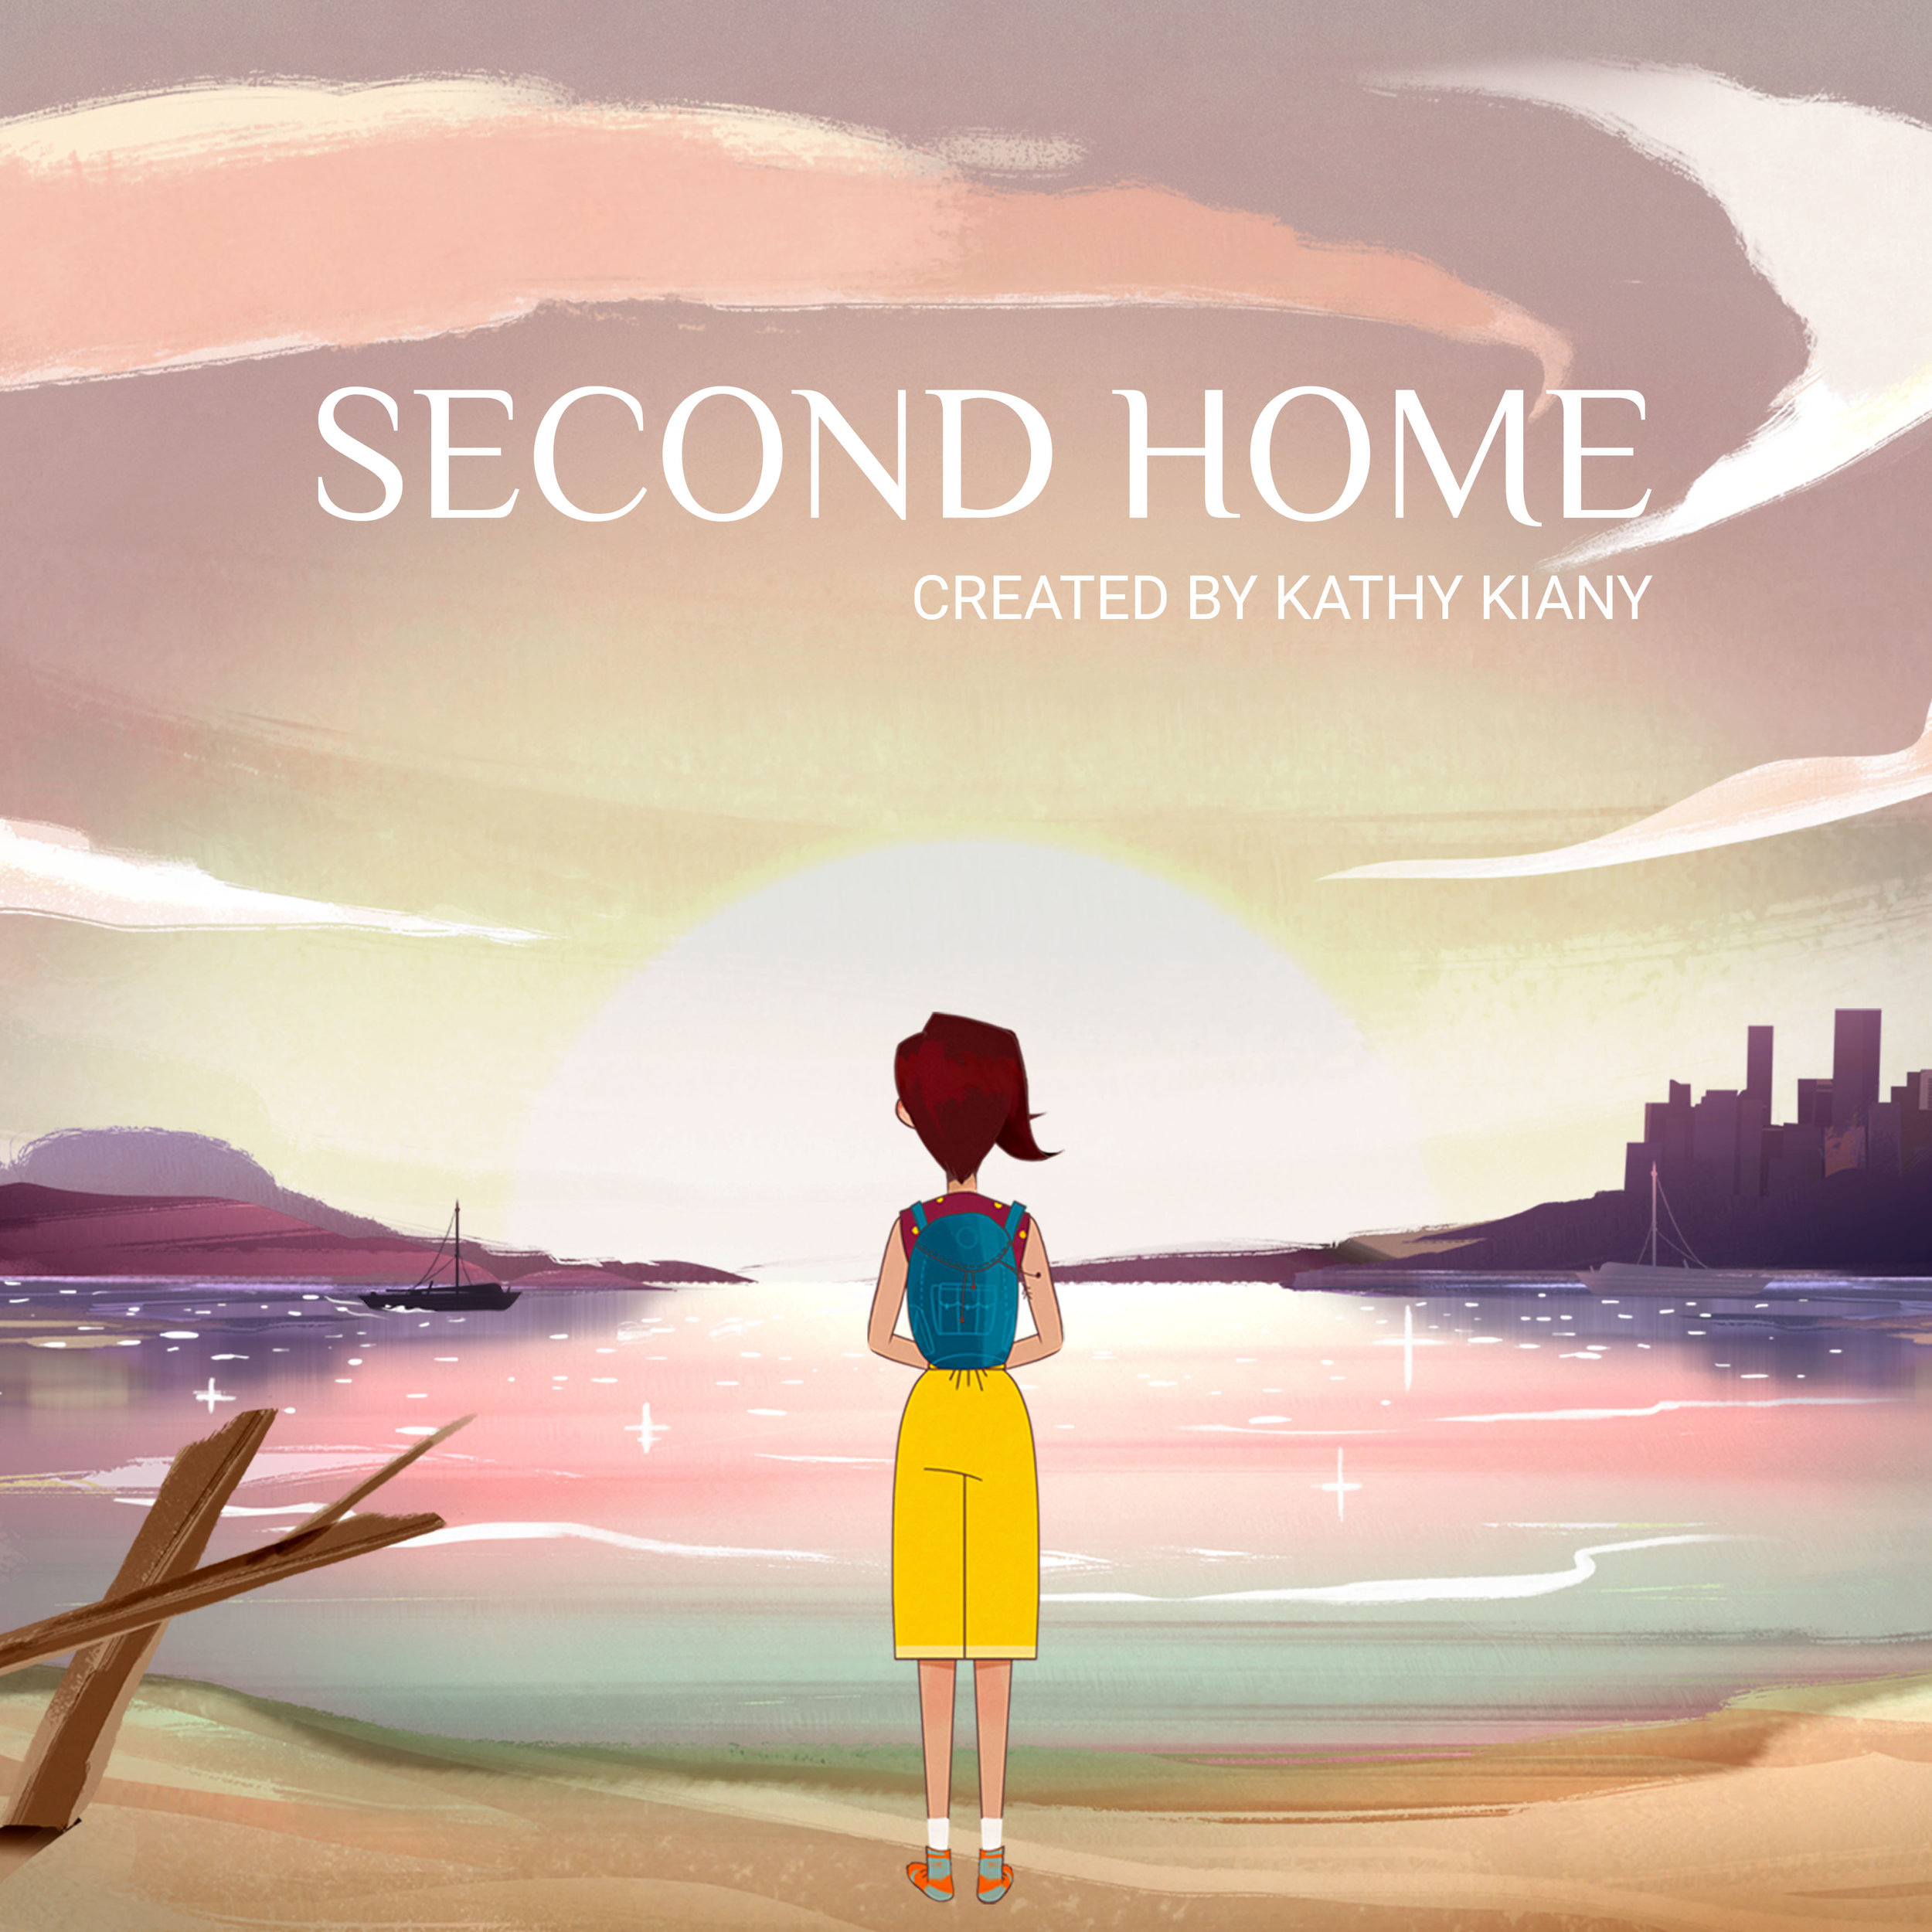 Second Home-Poster 2.jpg